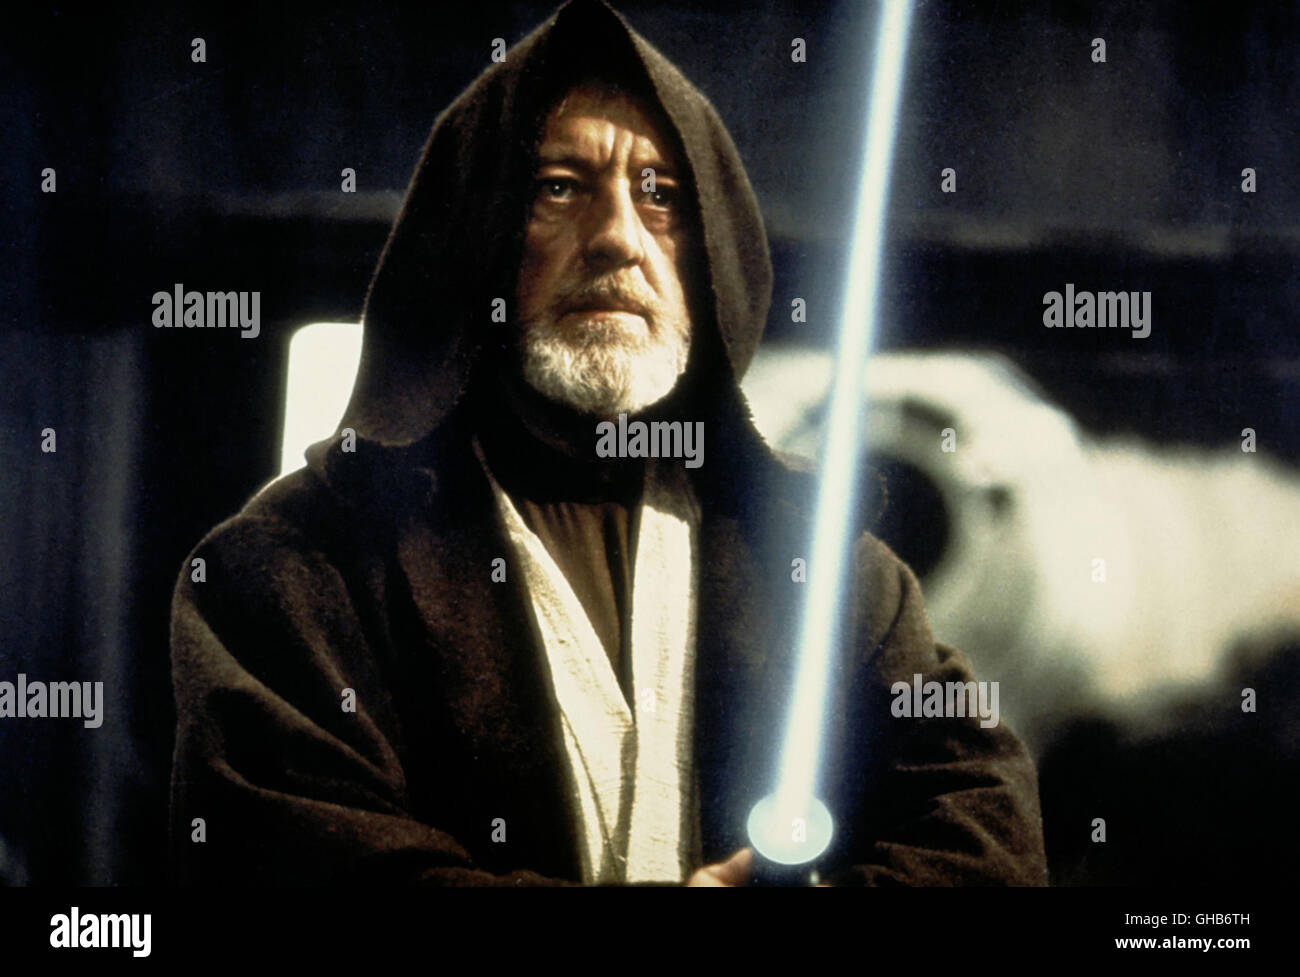 star wars episode 4 a new hope full movie download